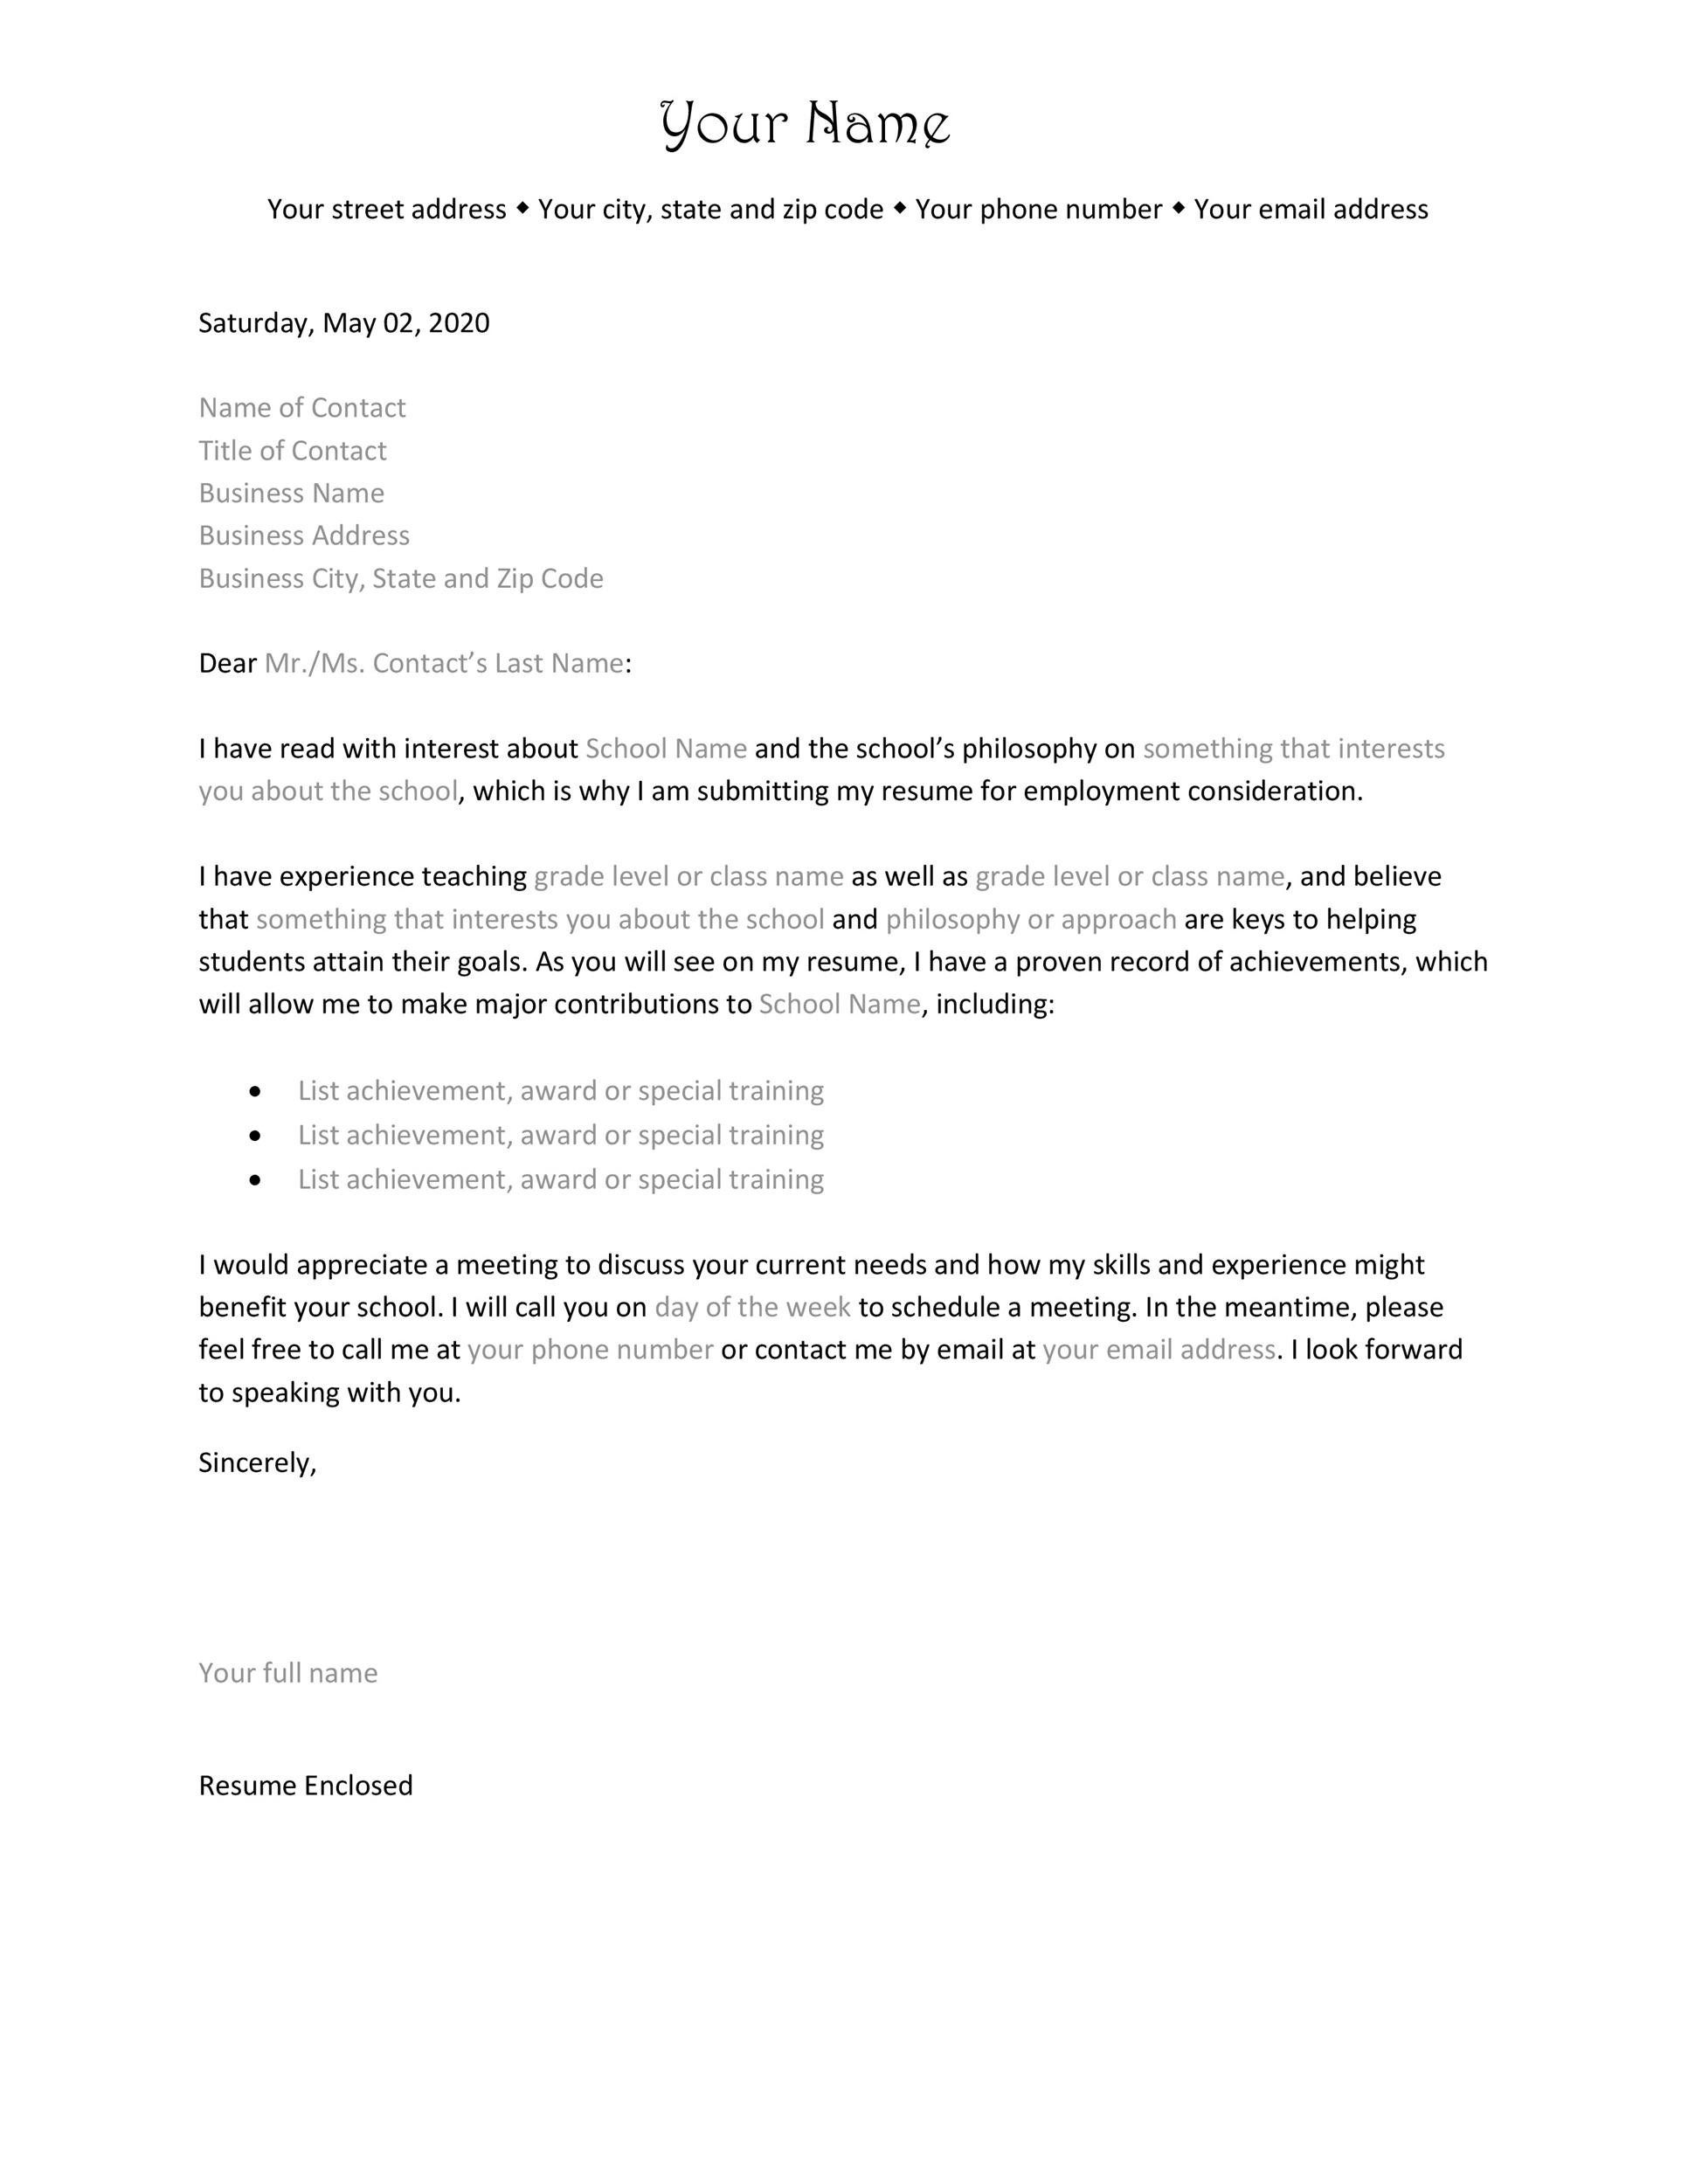 sample cover letter of interest for employment - 30 amazing letter of interest samples templates